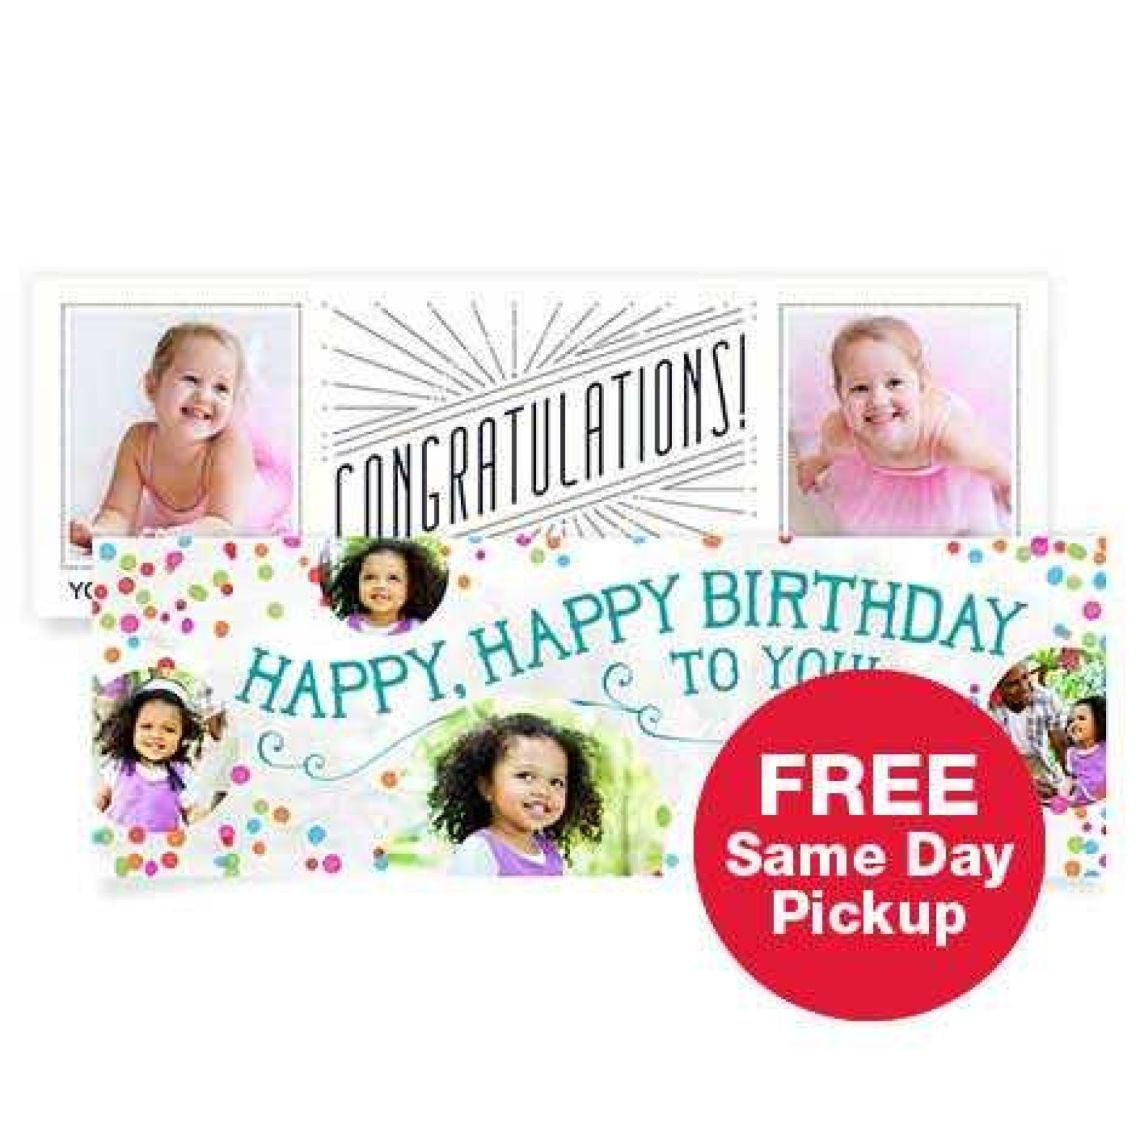 Photo Posters & Banners - Create Posters & Banners | Walgreens Photo